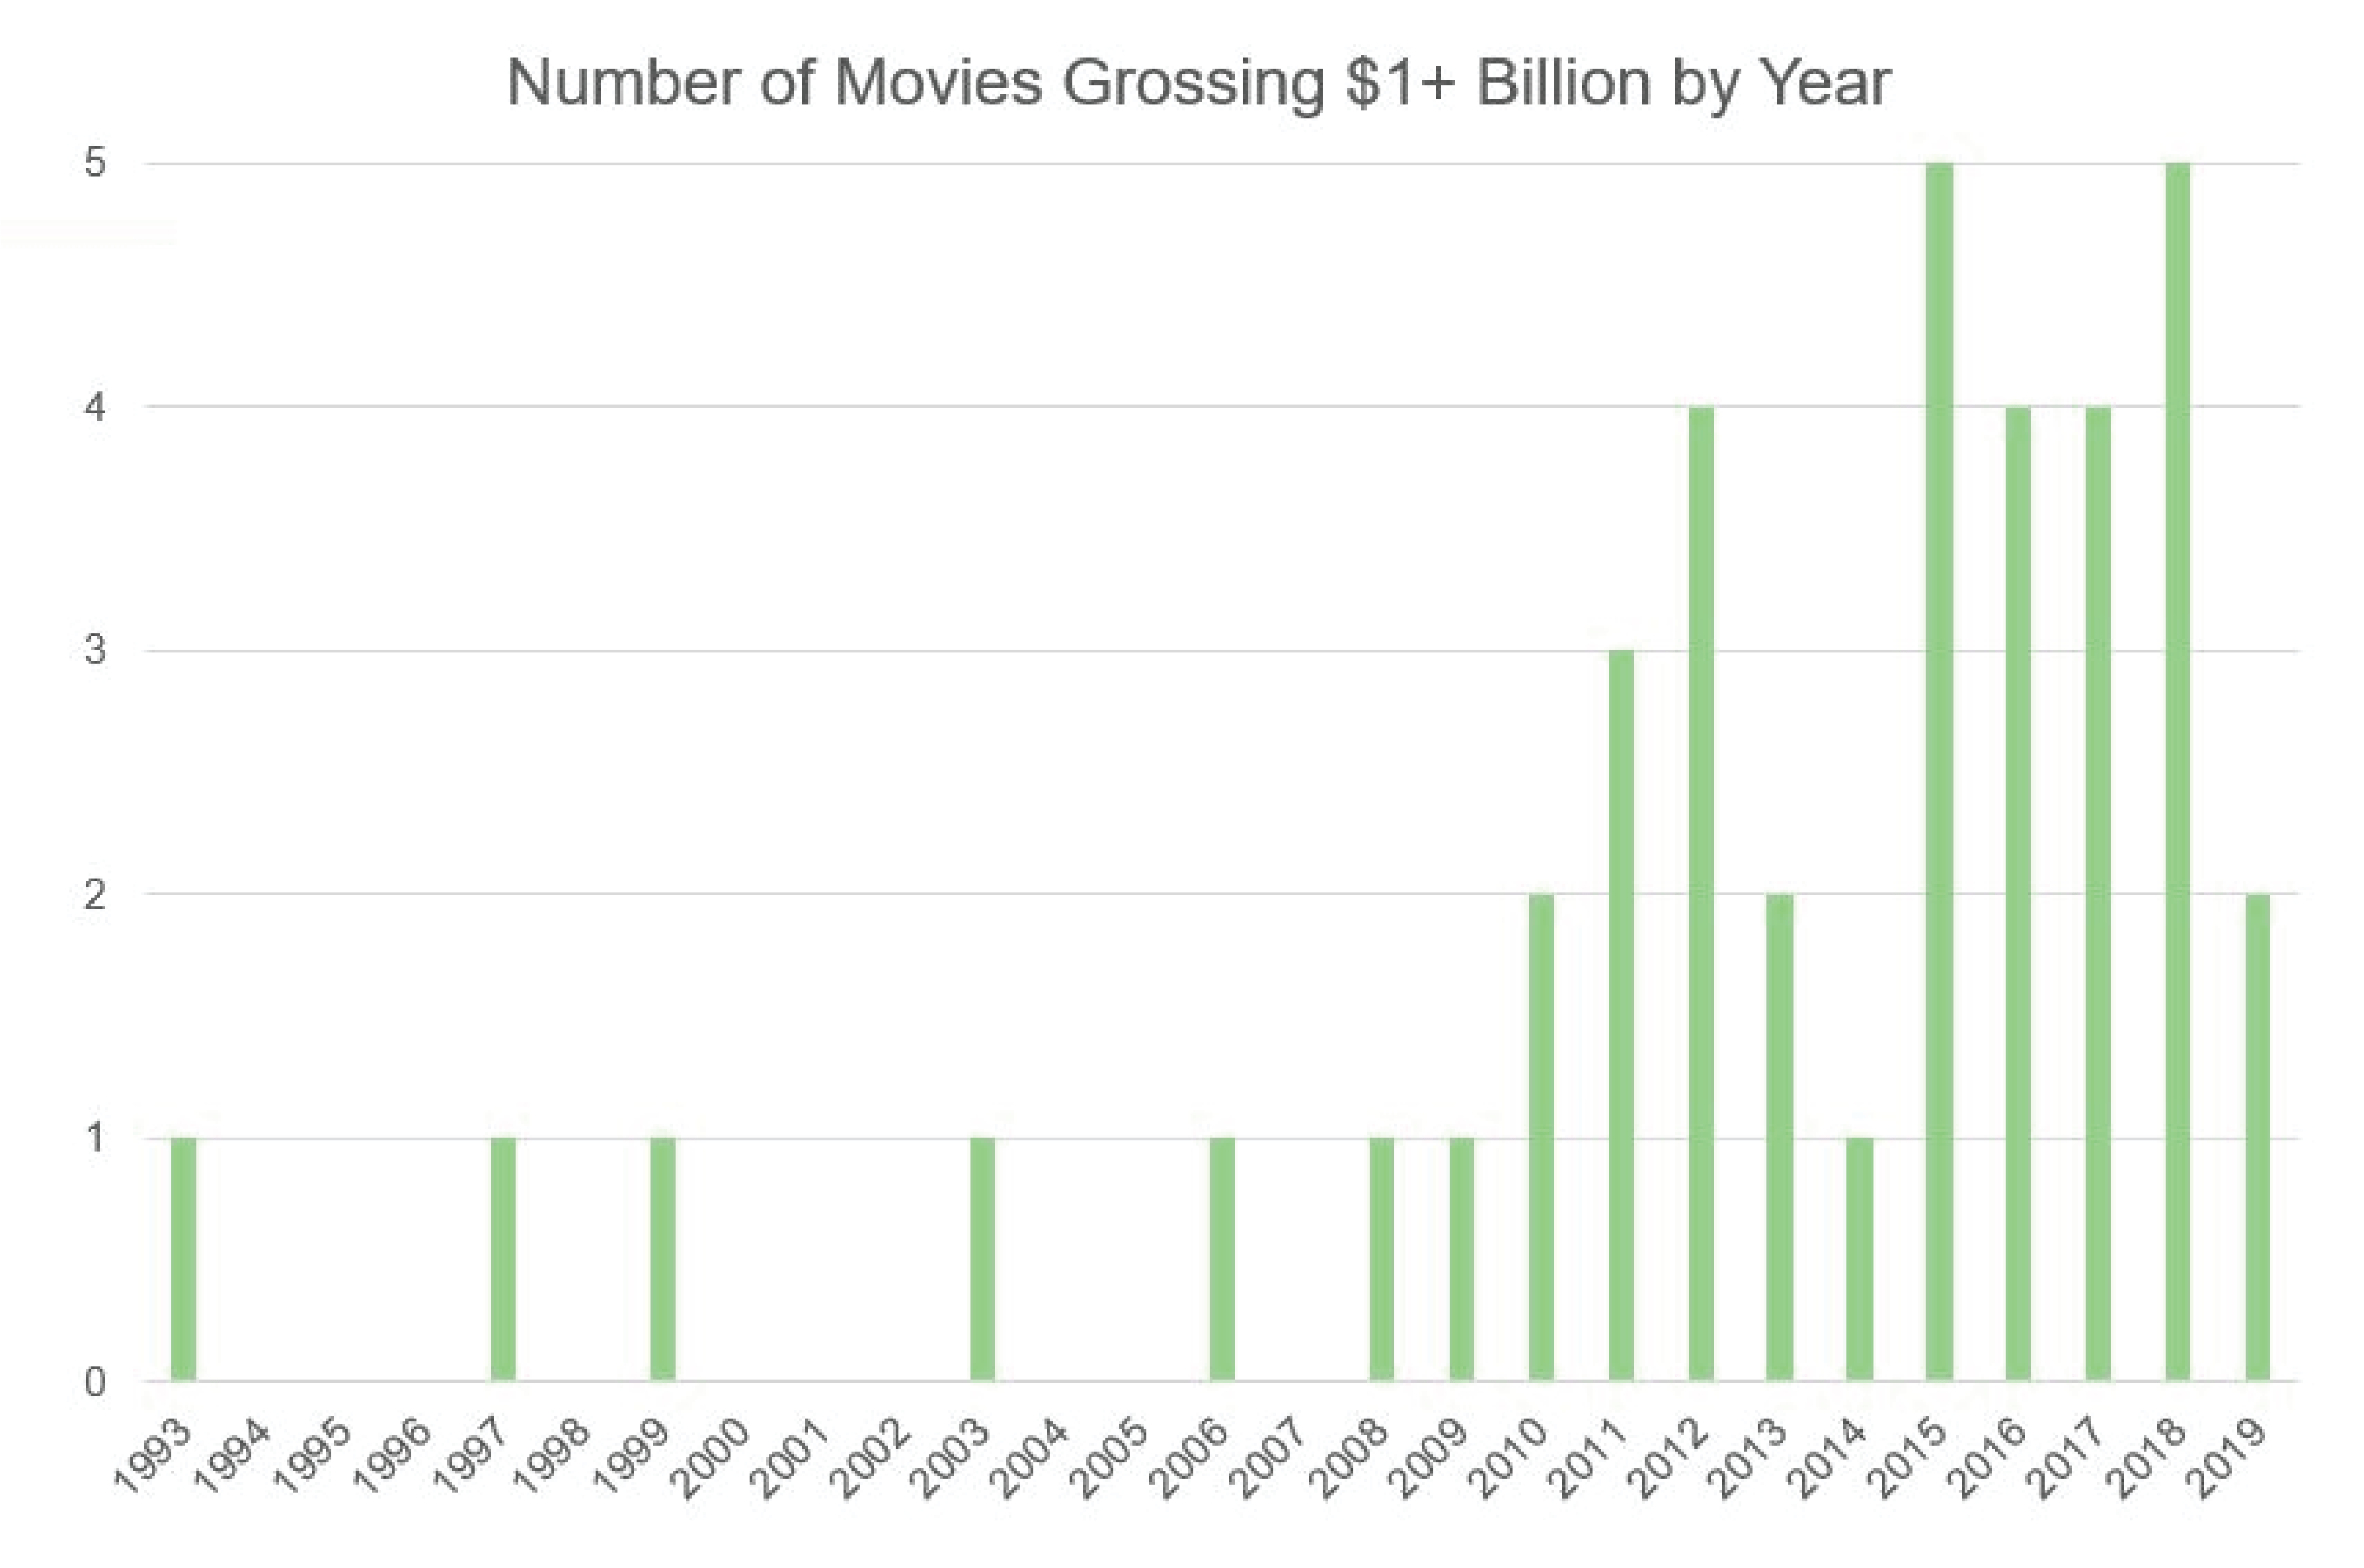 chart showing movies grossing over $1 billion by year